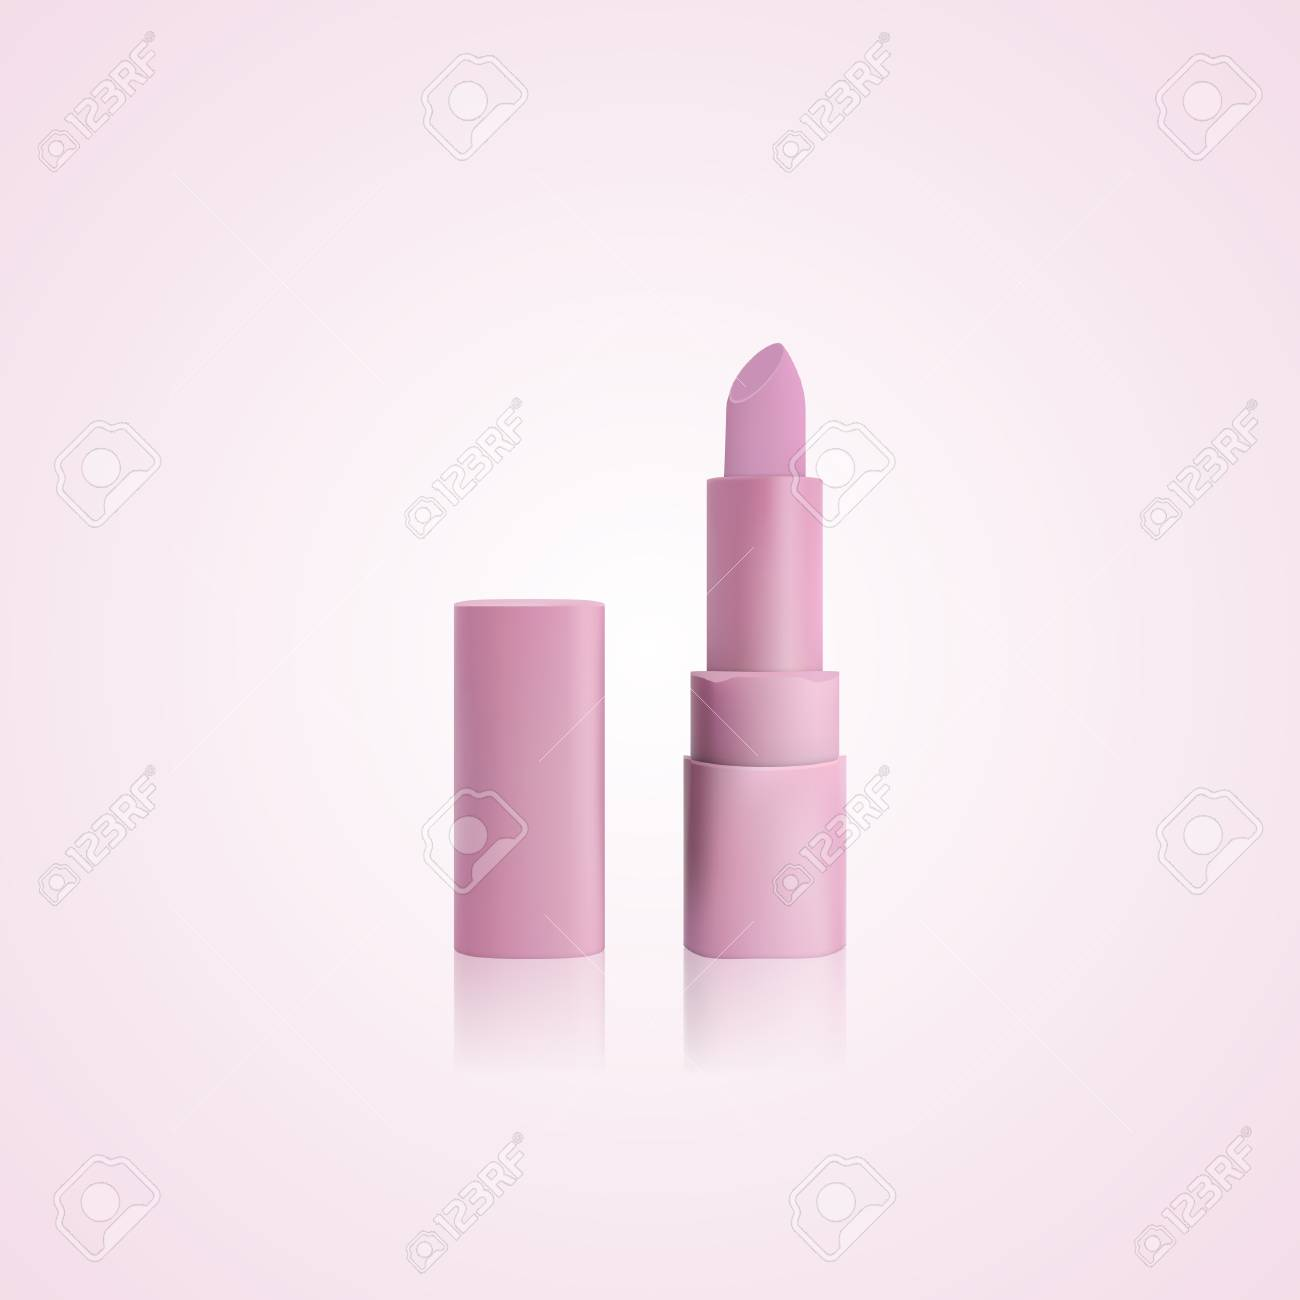 pink open lipstick with cap pink packaging mockup template